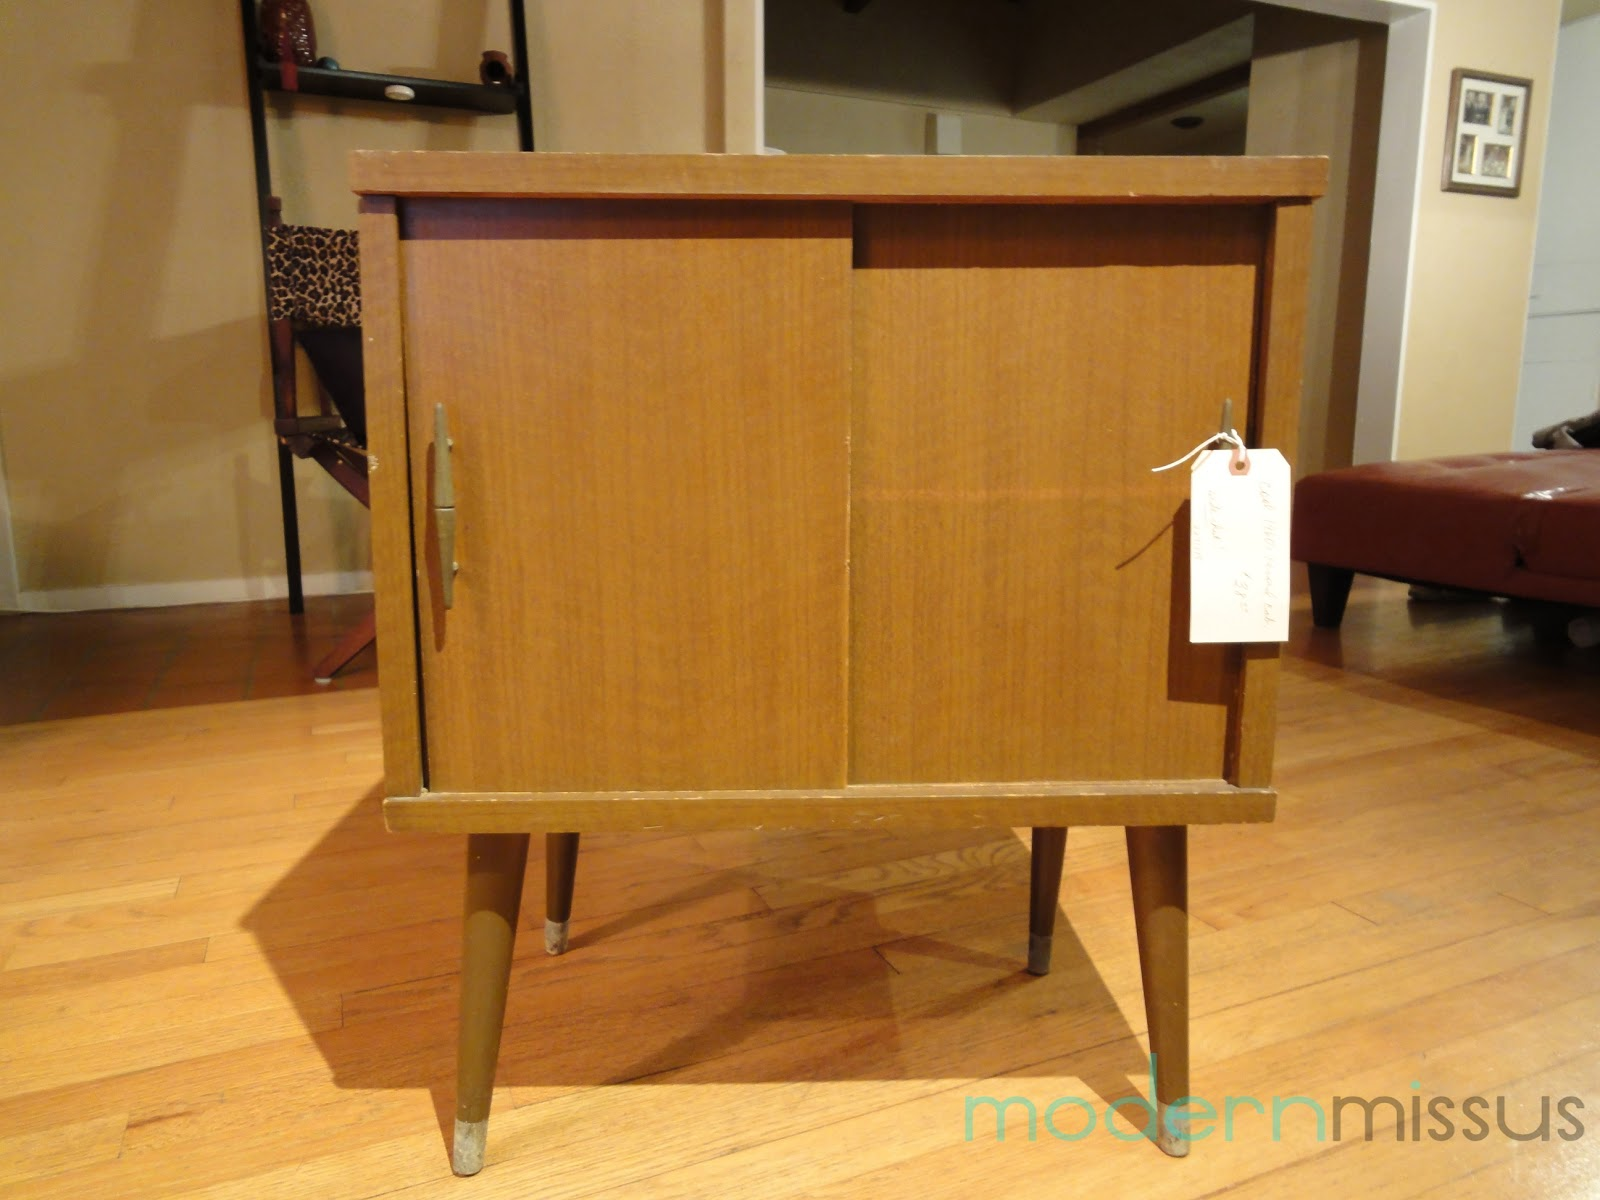 1960s Record Cabinet Modern Missus 1960s Record Cabinet Remix